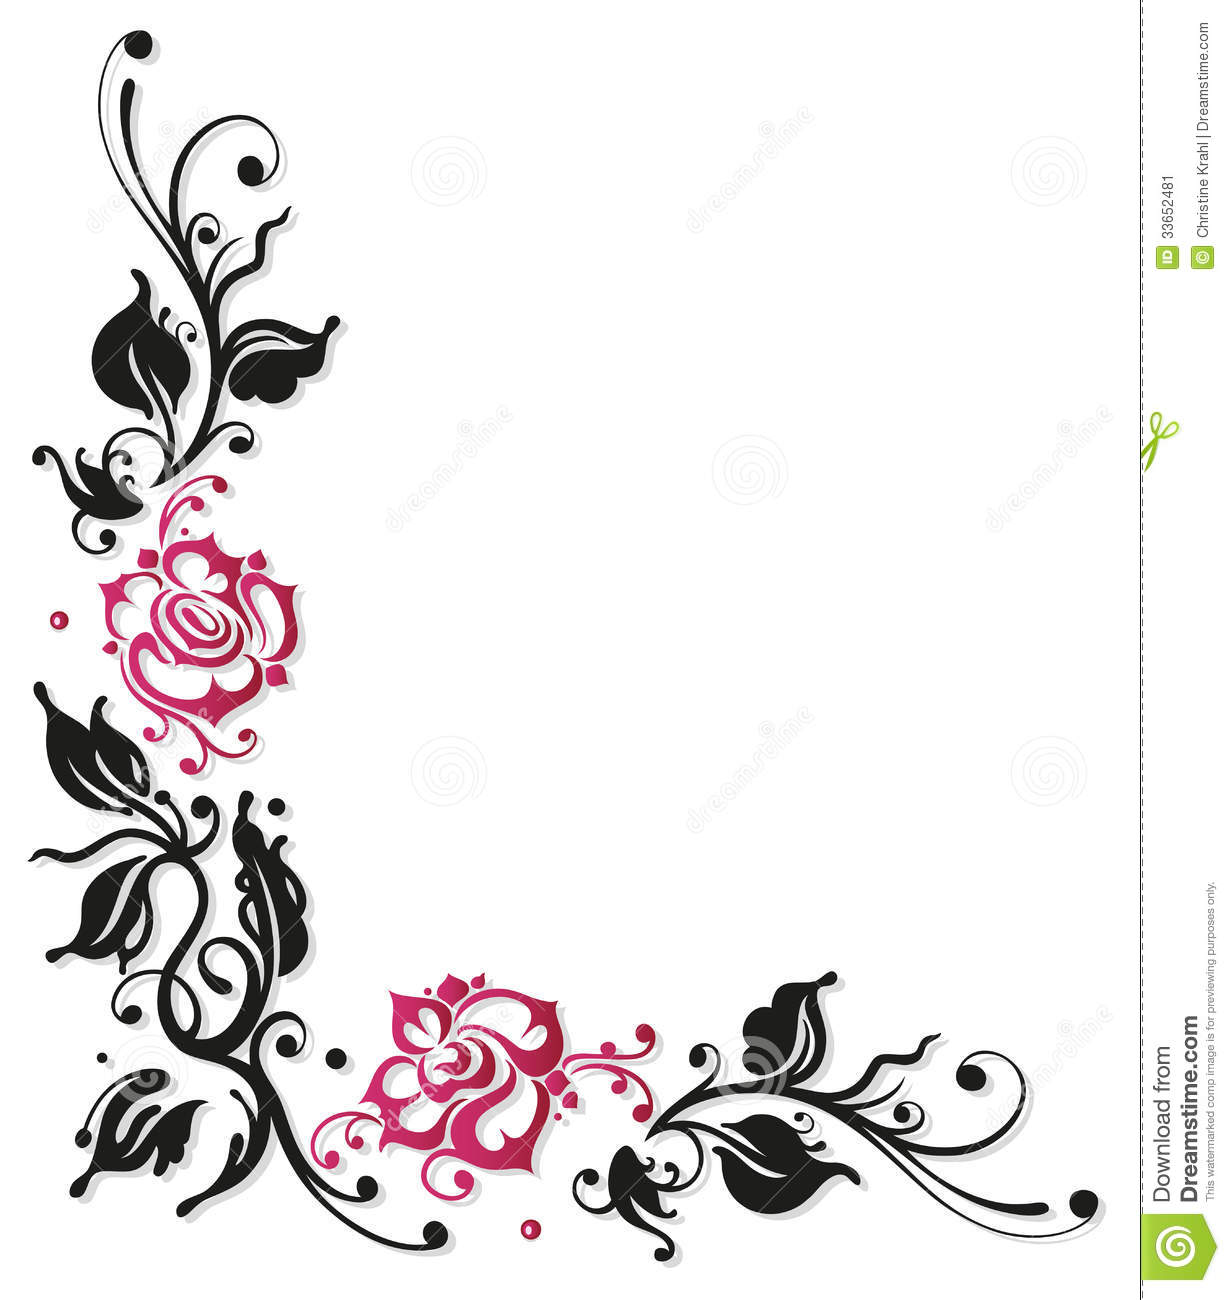 1230x1300 Black And White Flowers Borders Clipart